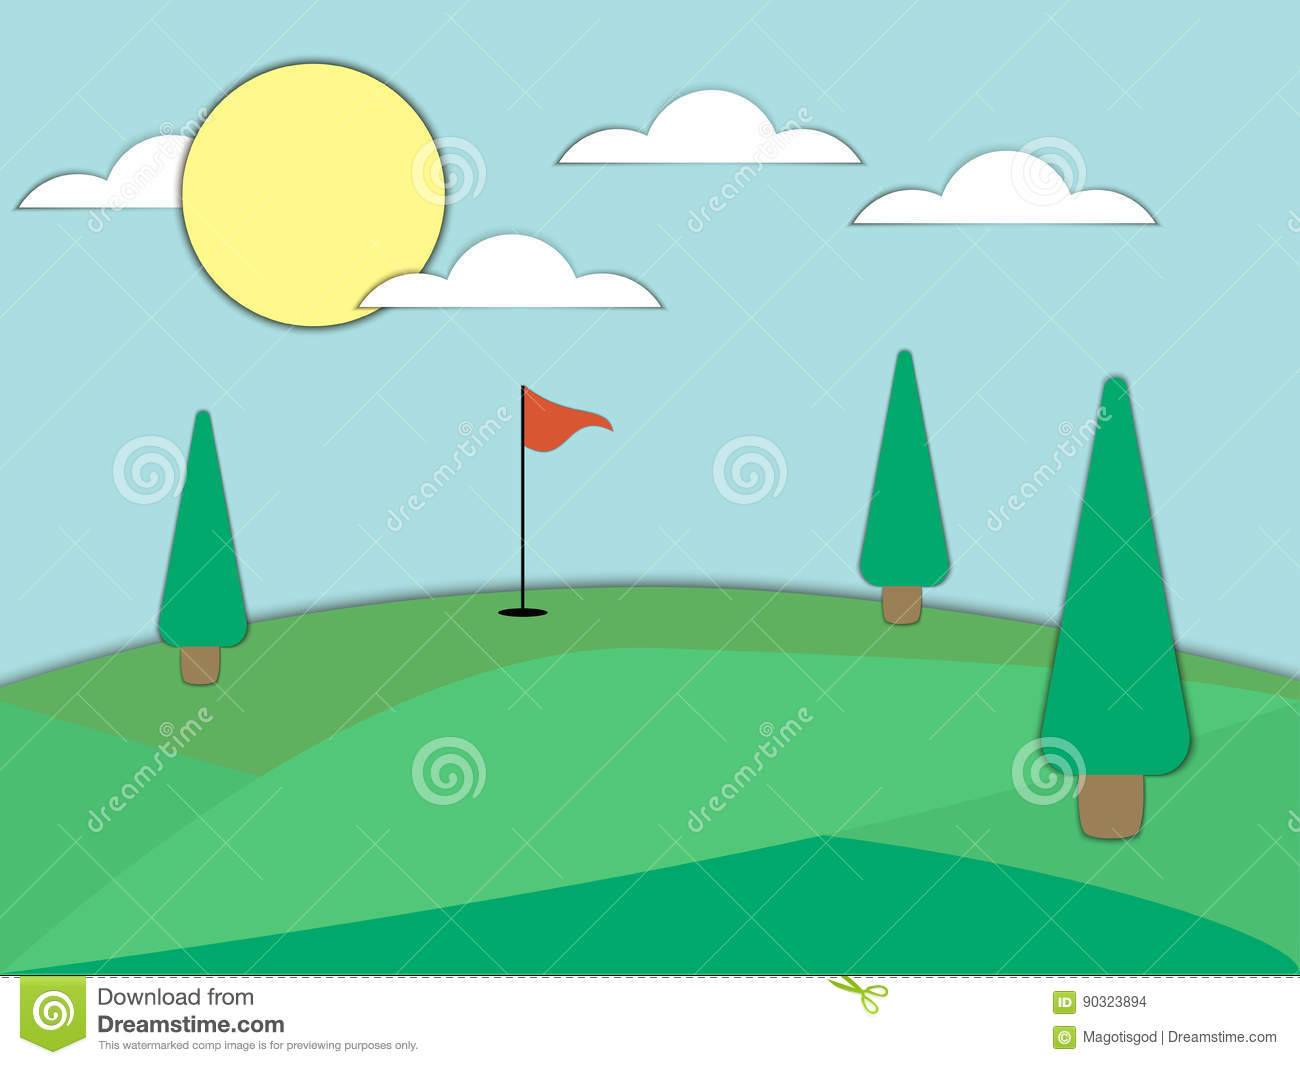 Golf Course With A Hole And A Red Flag. Paper Art. Landscape ... on golf backswing diagram, golf rules, golf water hazard, pool diagram, black hole diagram, tennis court diagram, croquet diagram, palm tree diagram, 5 wire trailer wiring diagram, golf cart diagram, horse diagram, par 3 golf course diagram, football hole diagram, golf green diagram, golf green design, beach diagram,